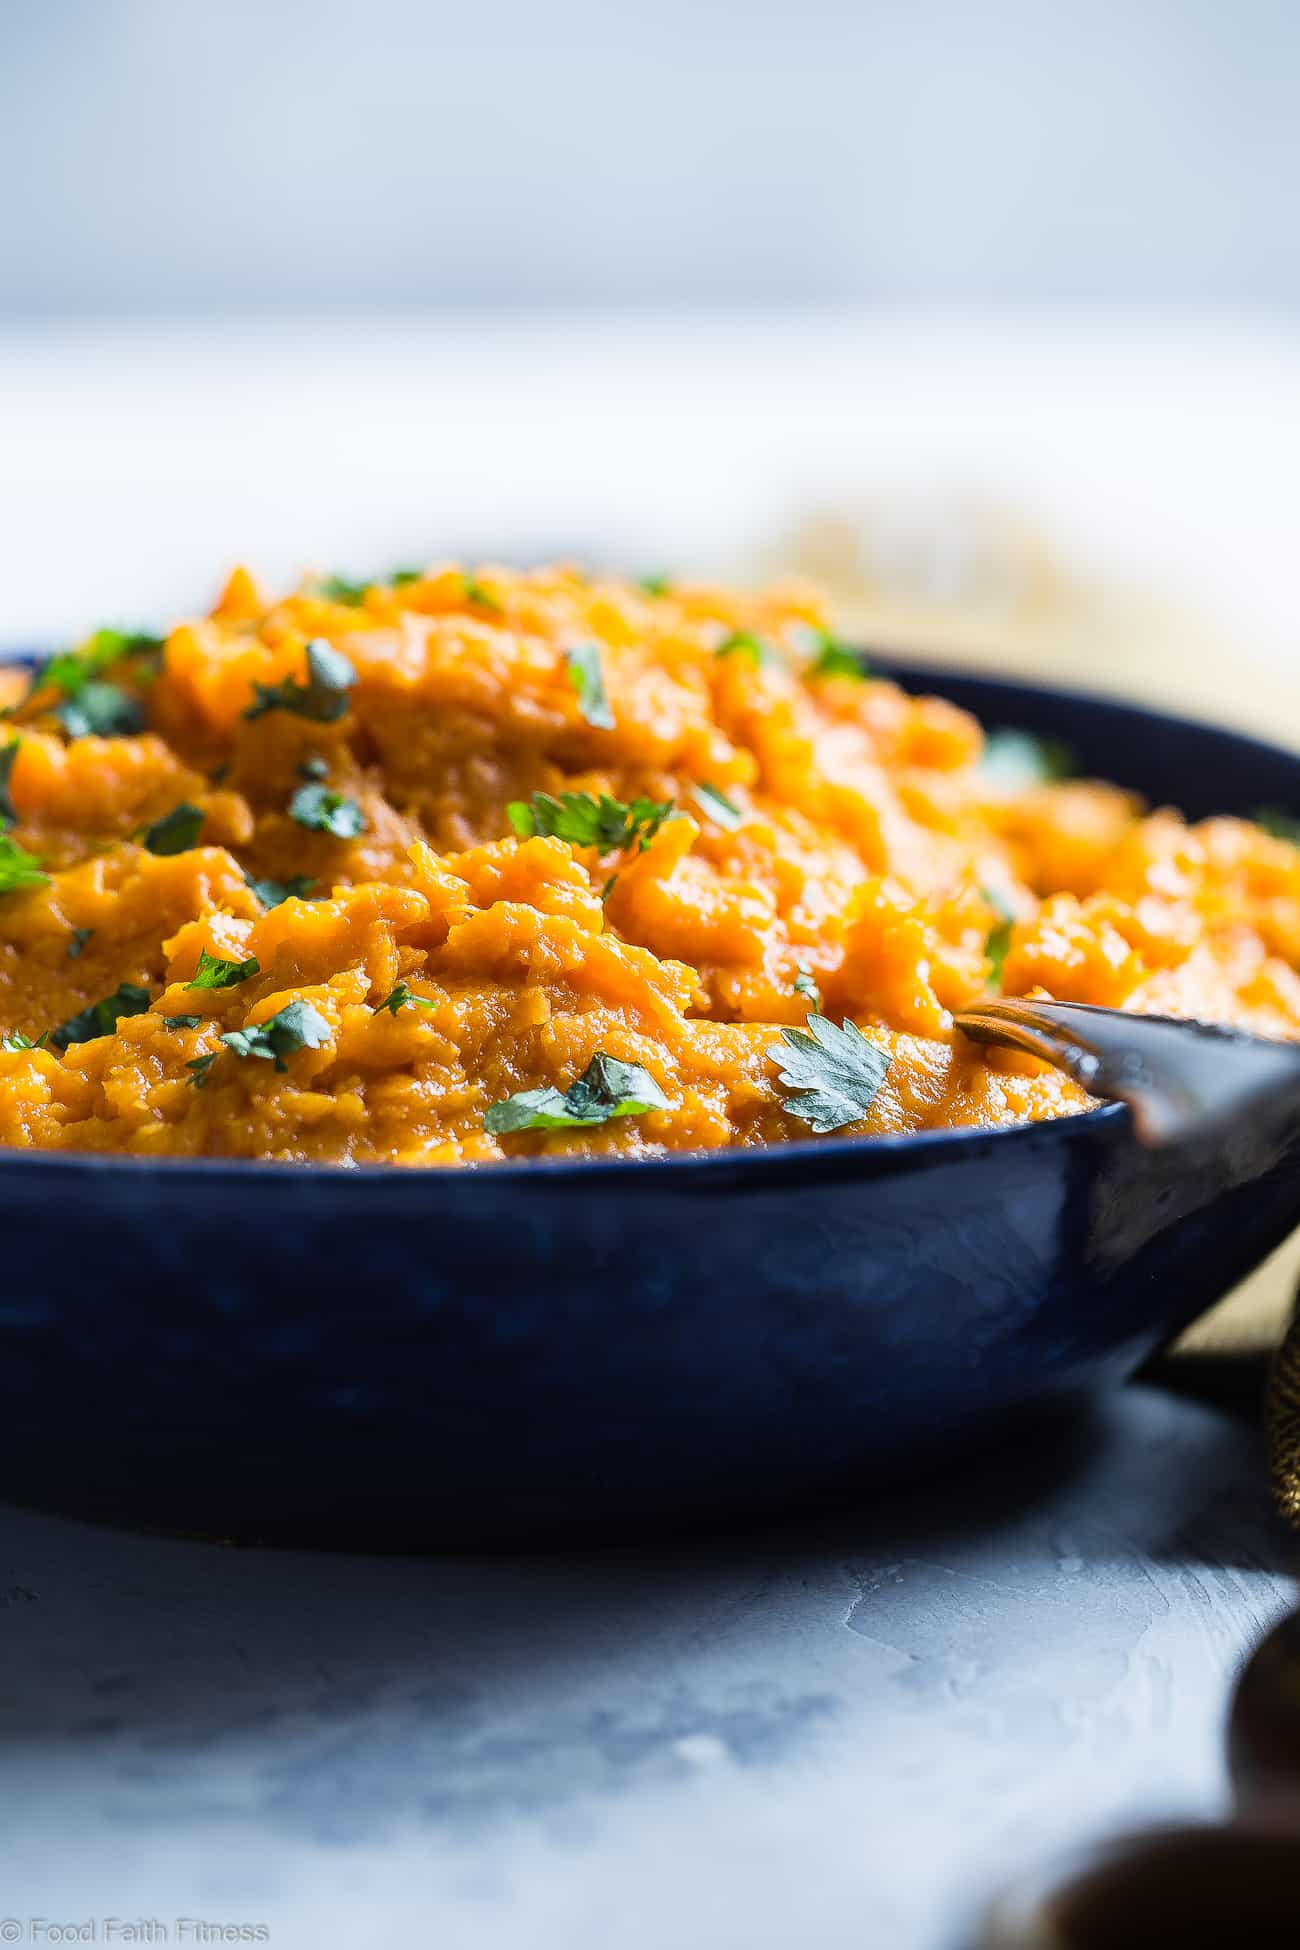 Coconut Curry Mashed Sweet Potatoes - Asweet and spicy spin on a holiday classic! So creamy you will never believe they are dairy, grain and gluten free and paleo/vegan/whole30 compliant! | Foodfaithfitness.com | @FoodFaithFit